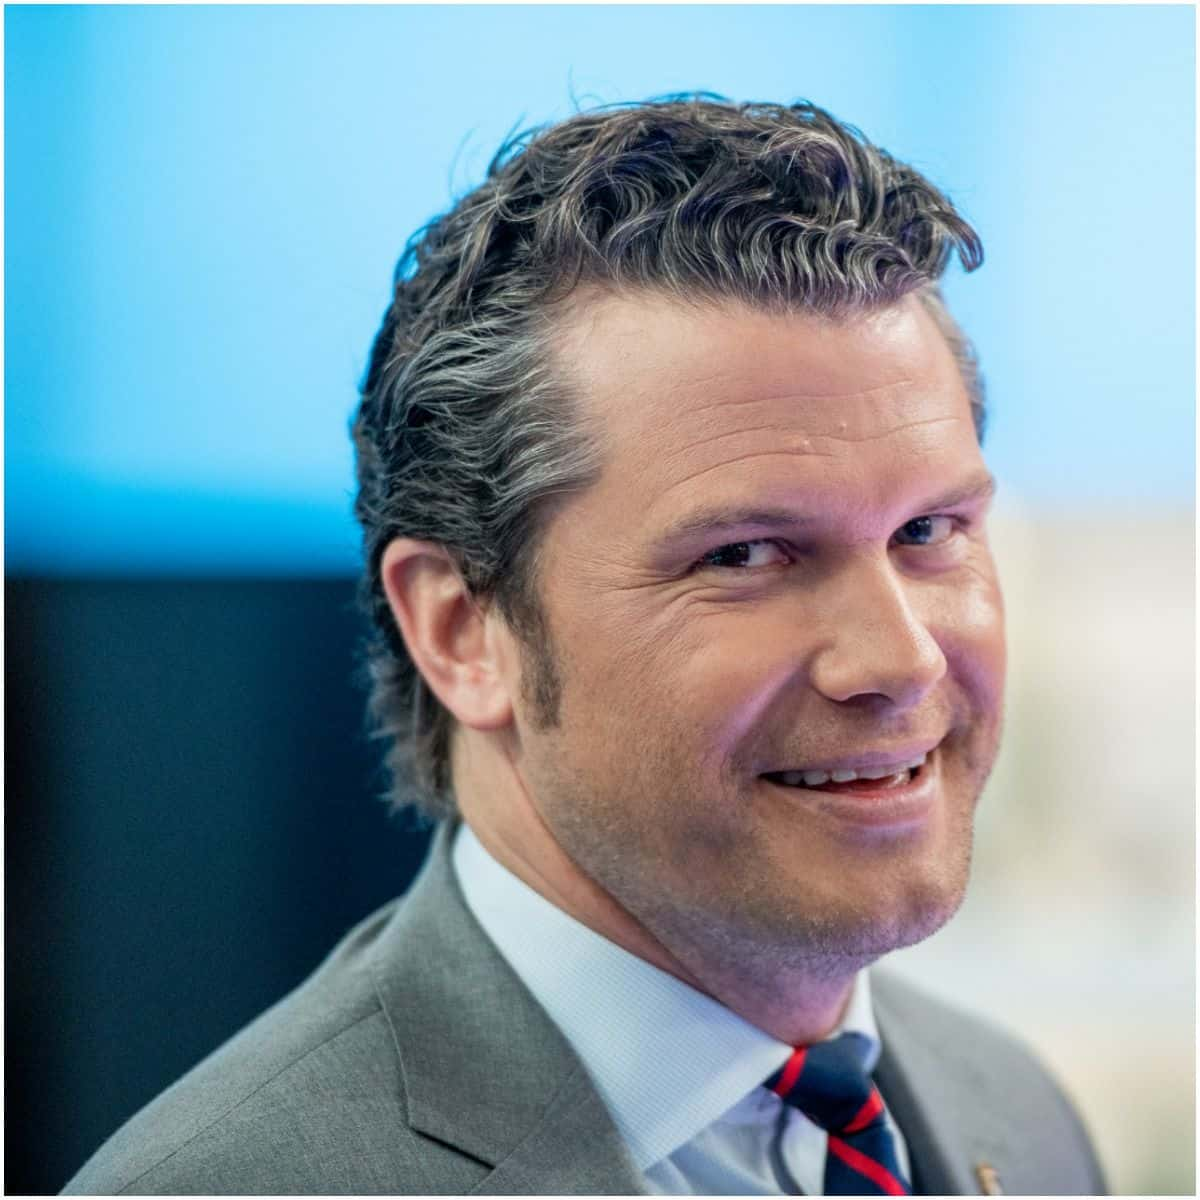 what is the net worth of Pete Hegseth